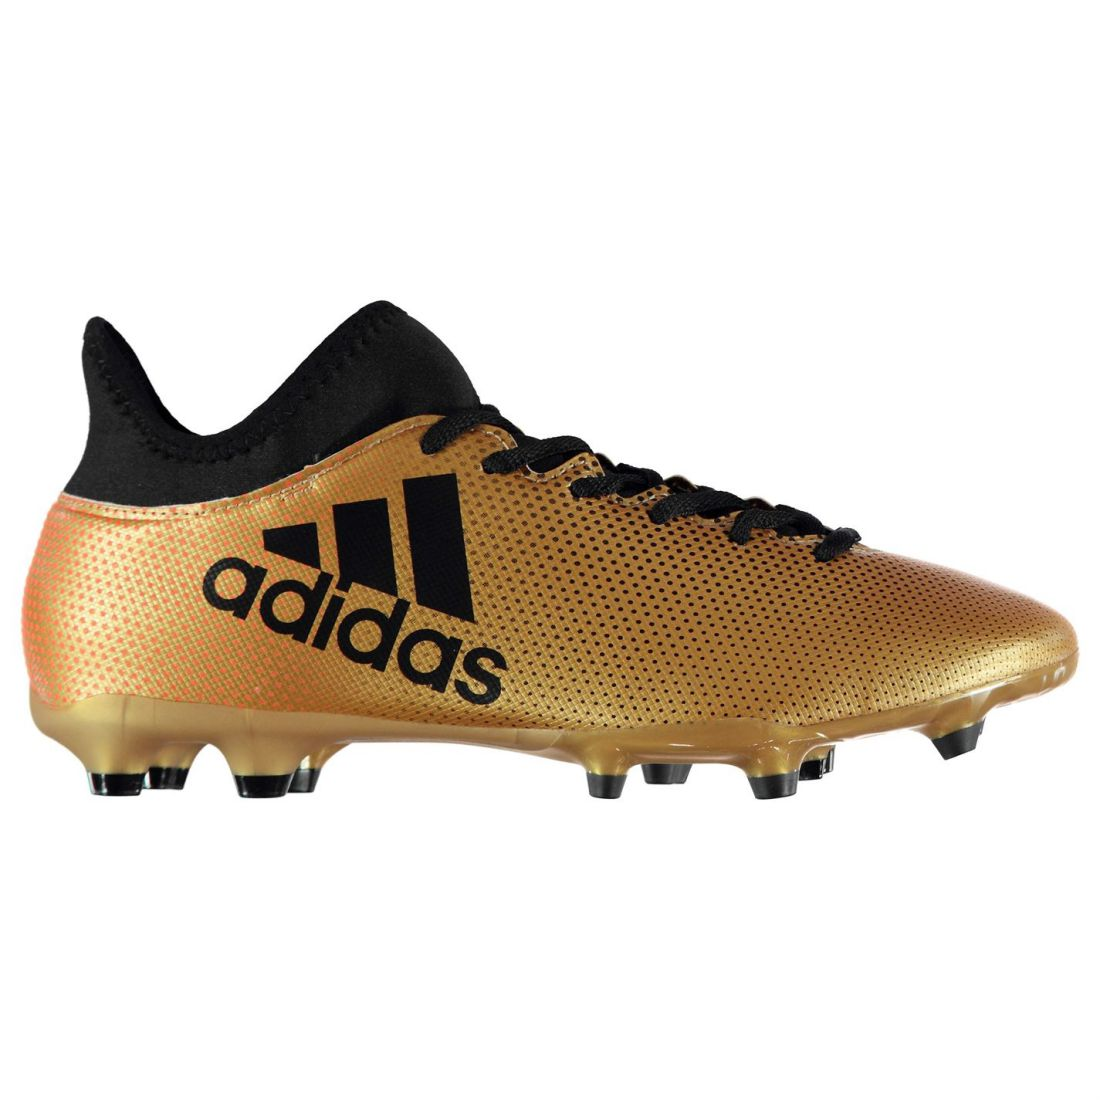 big sale 5e666 29797 Details about adidas X 17.3 FG Football Boots Mens Gents Firm Ground Laces  Fastened